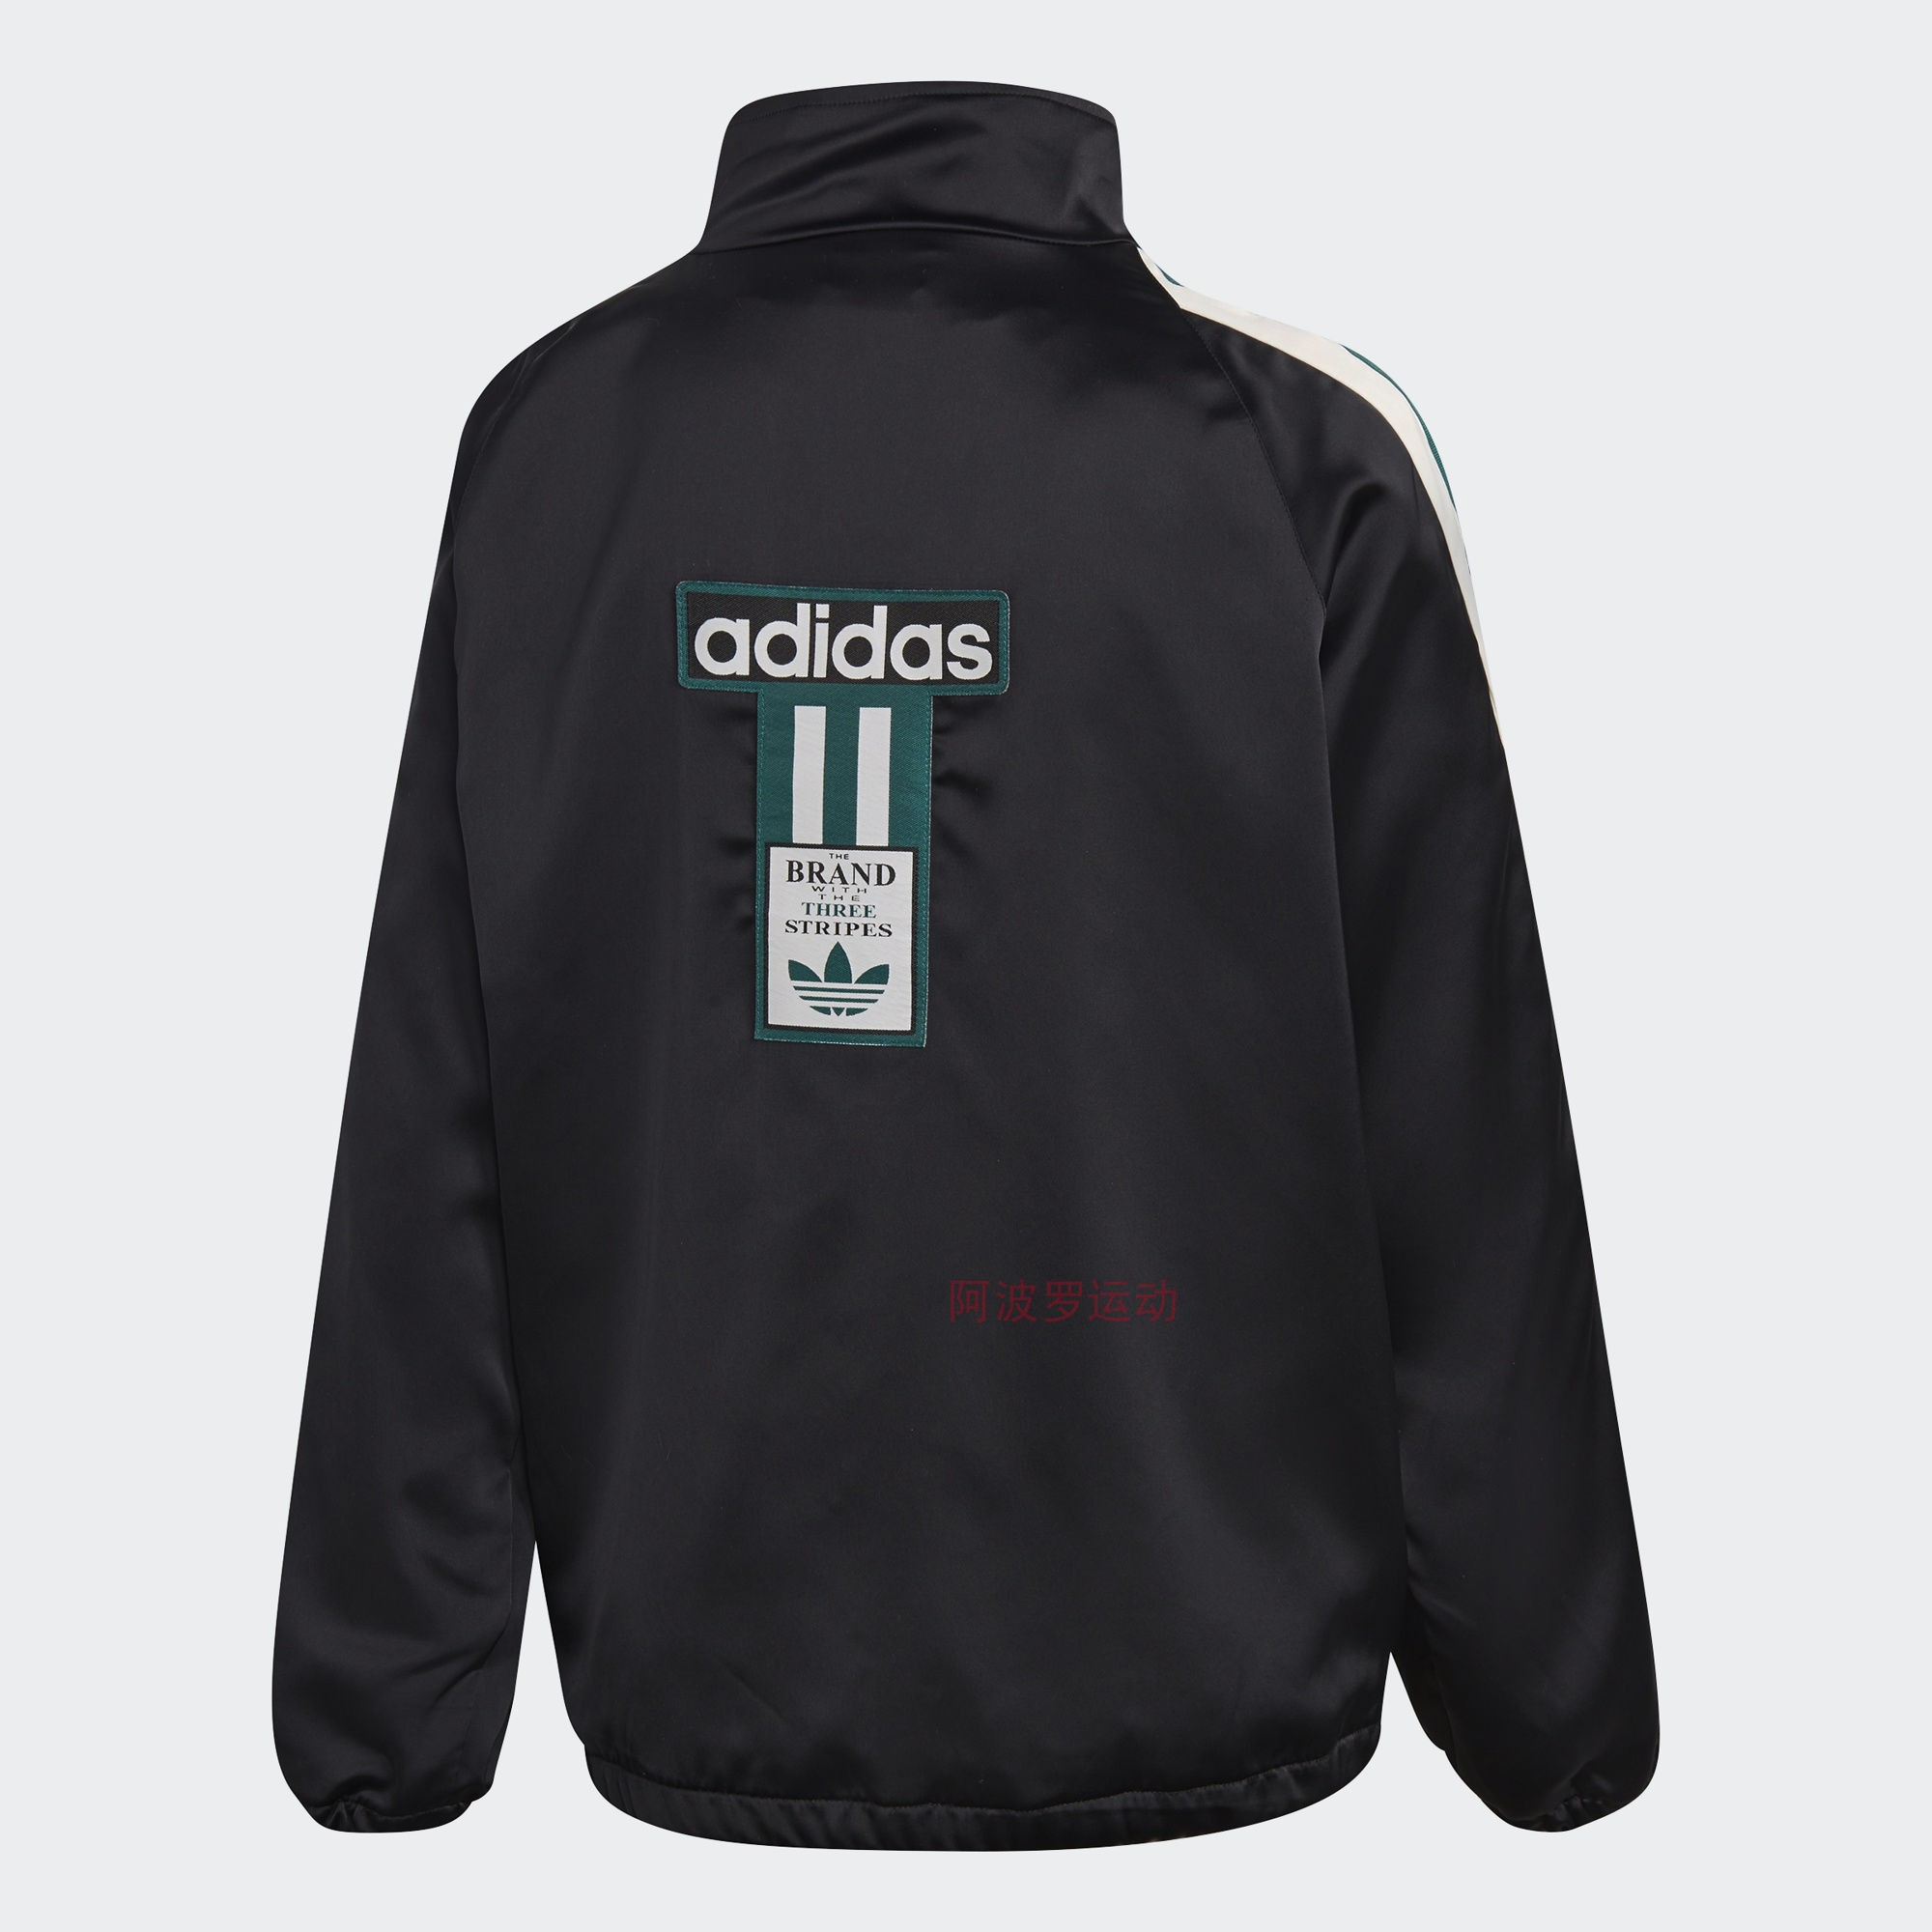 Original Adidas Womens Satin Snap Track Top DH4600 Jacket Velvet Firebird Track Black Top